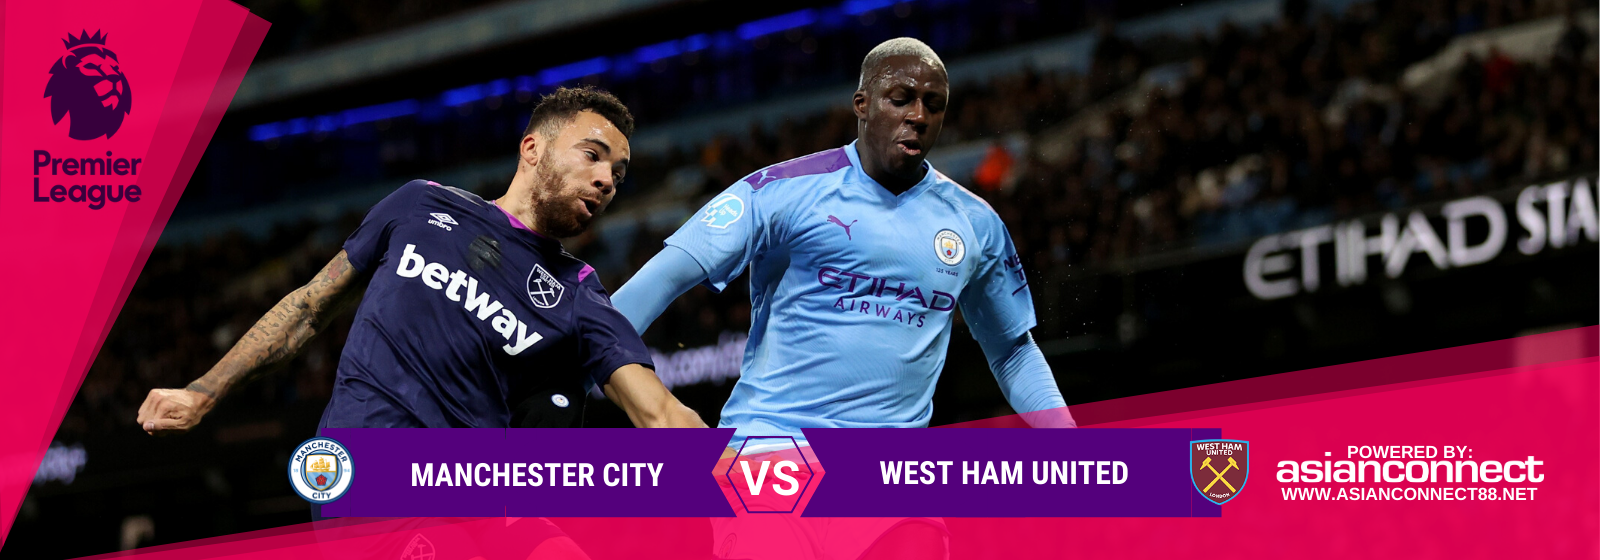 Asianconnect: Manchester City vs West Ham United Odds for February 09, 2020